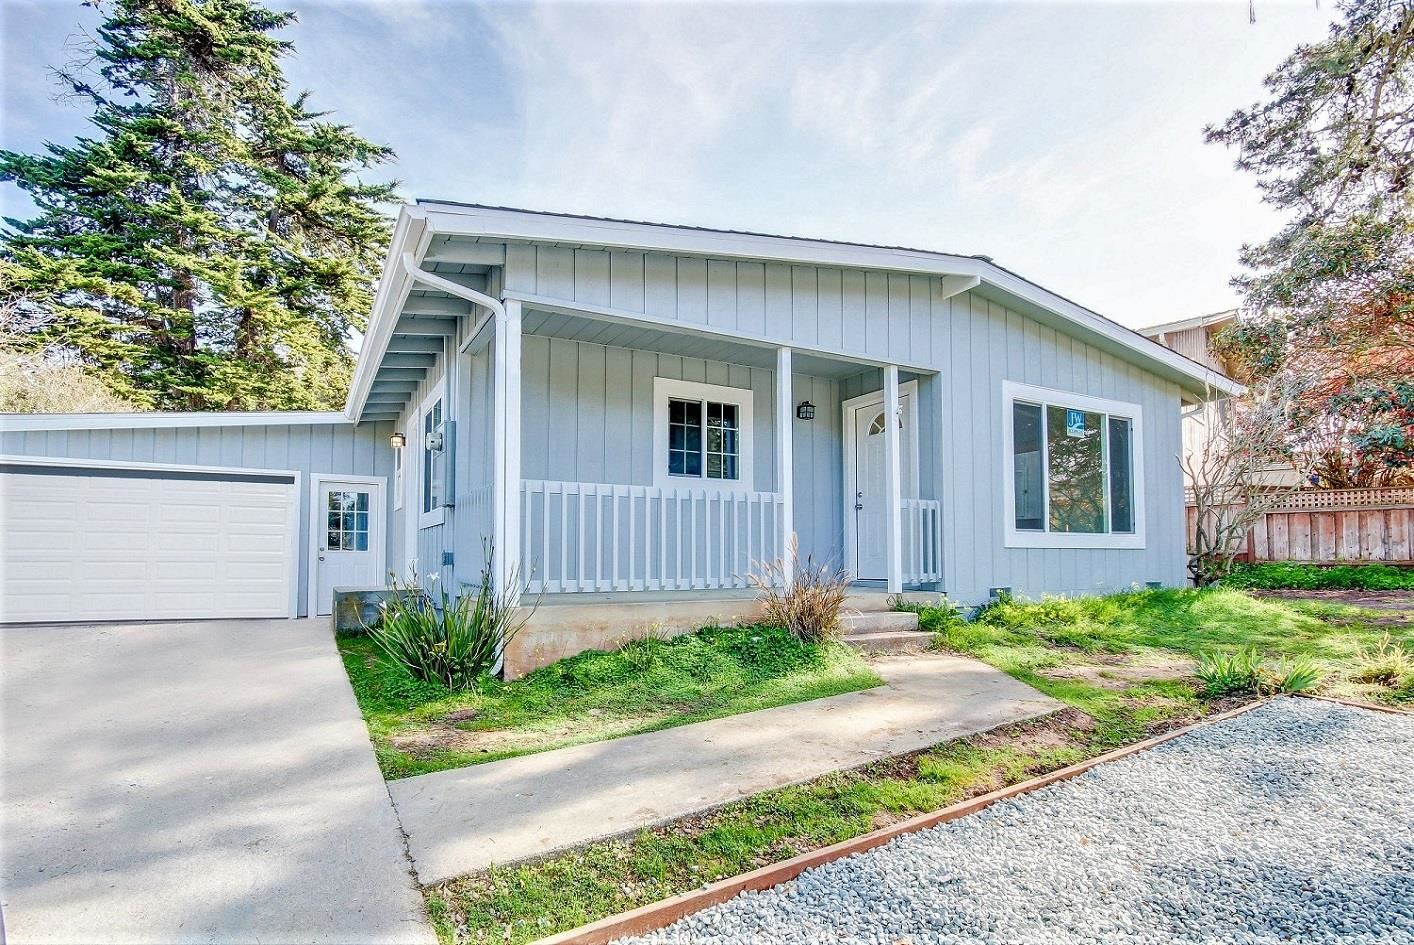 Photo for 407 Clubhouse DR, APTOS, CA 95003 (MLS # ML81786001)